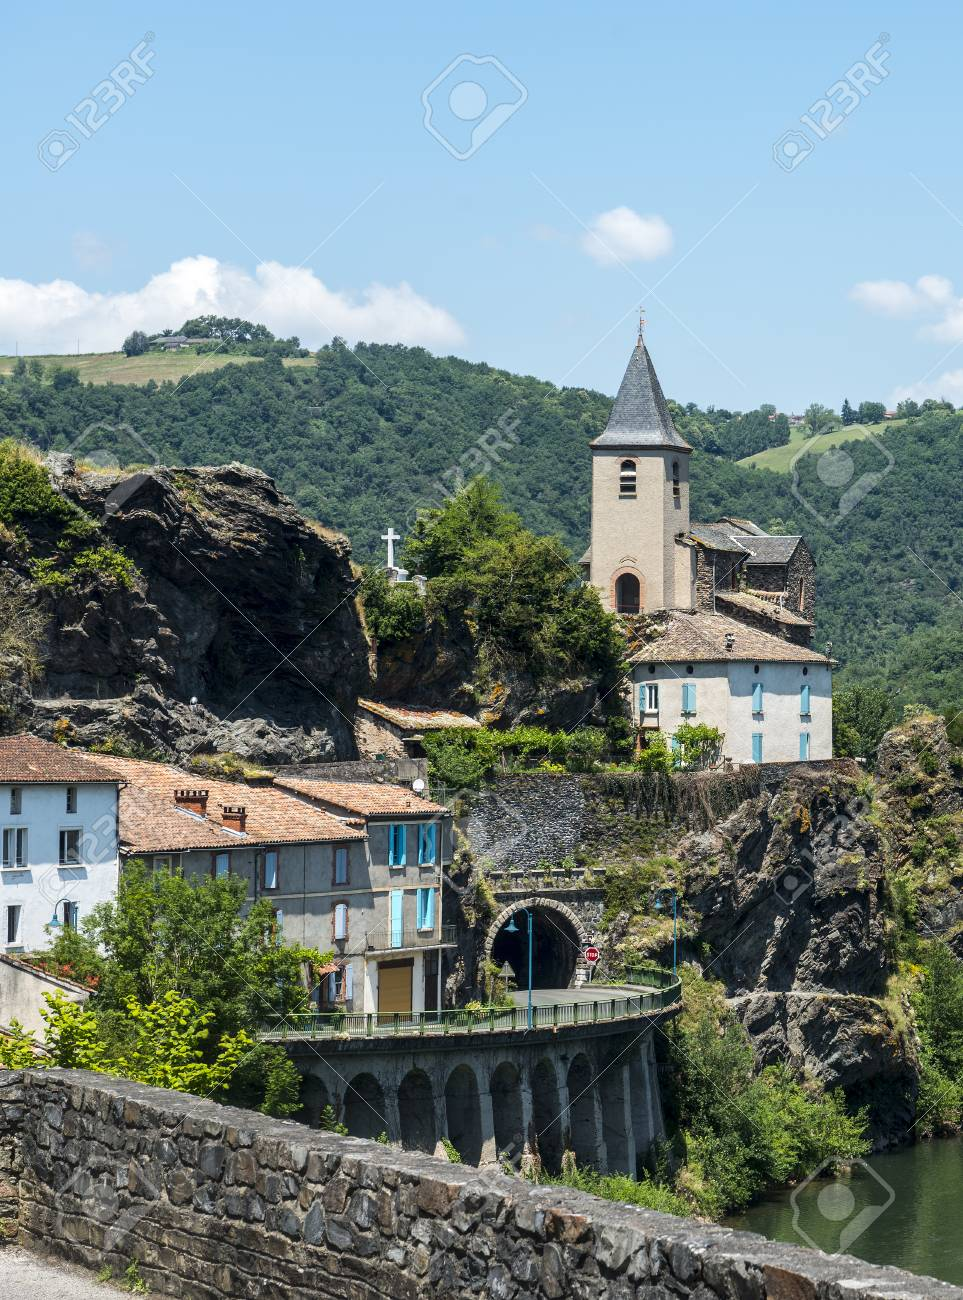 Ambialet (Tarn, Midi-Pyrenees), the old village on the Tarn river